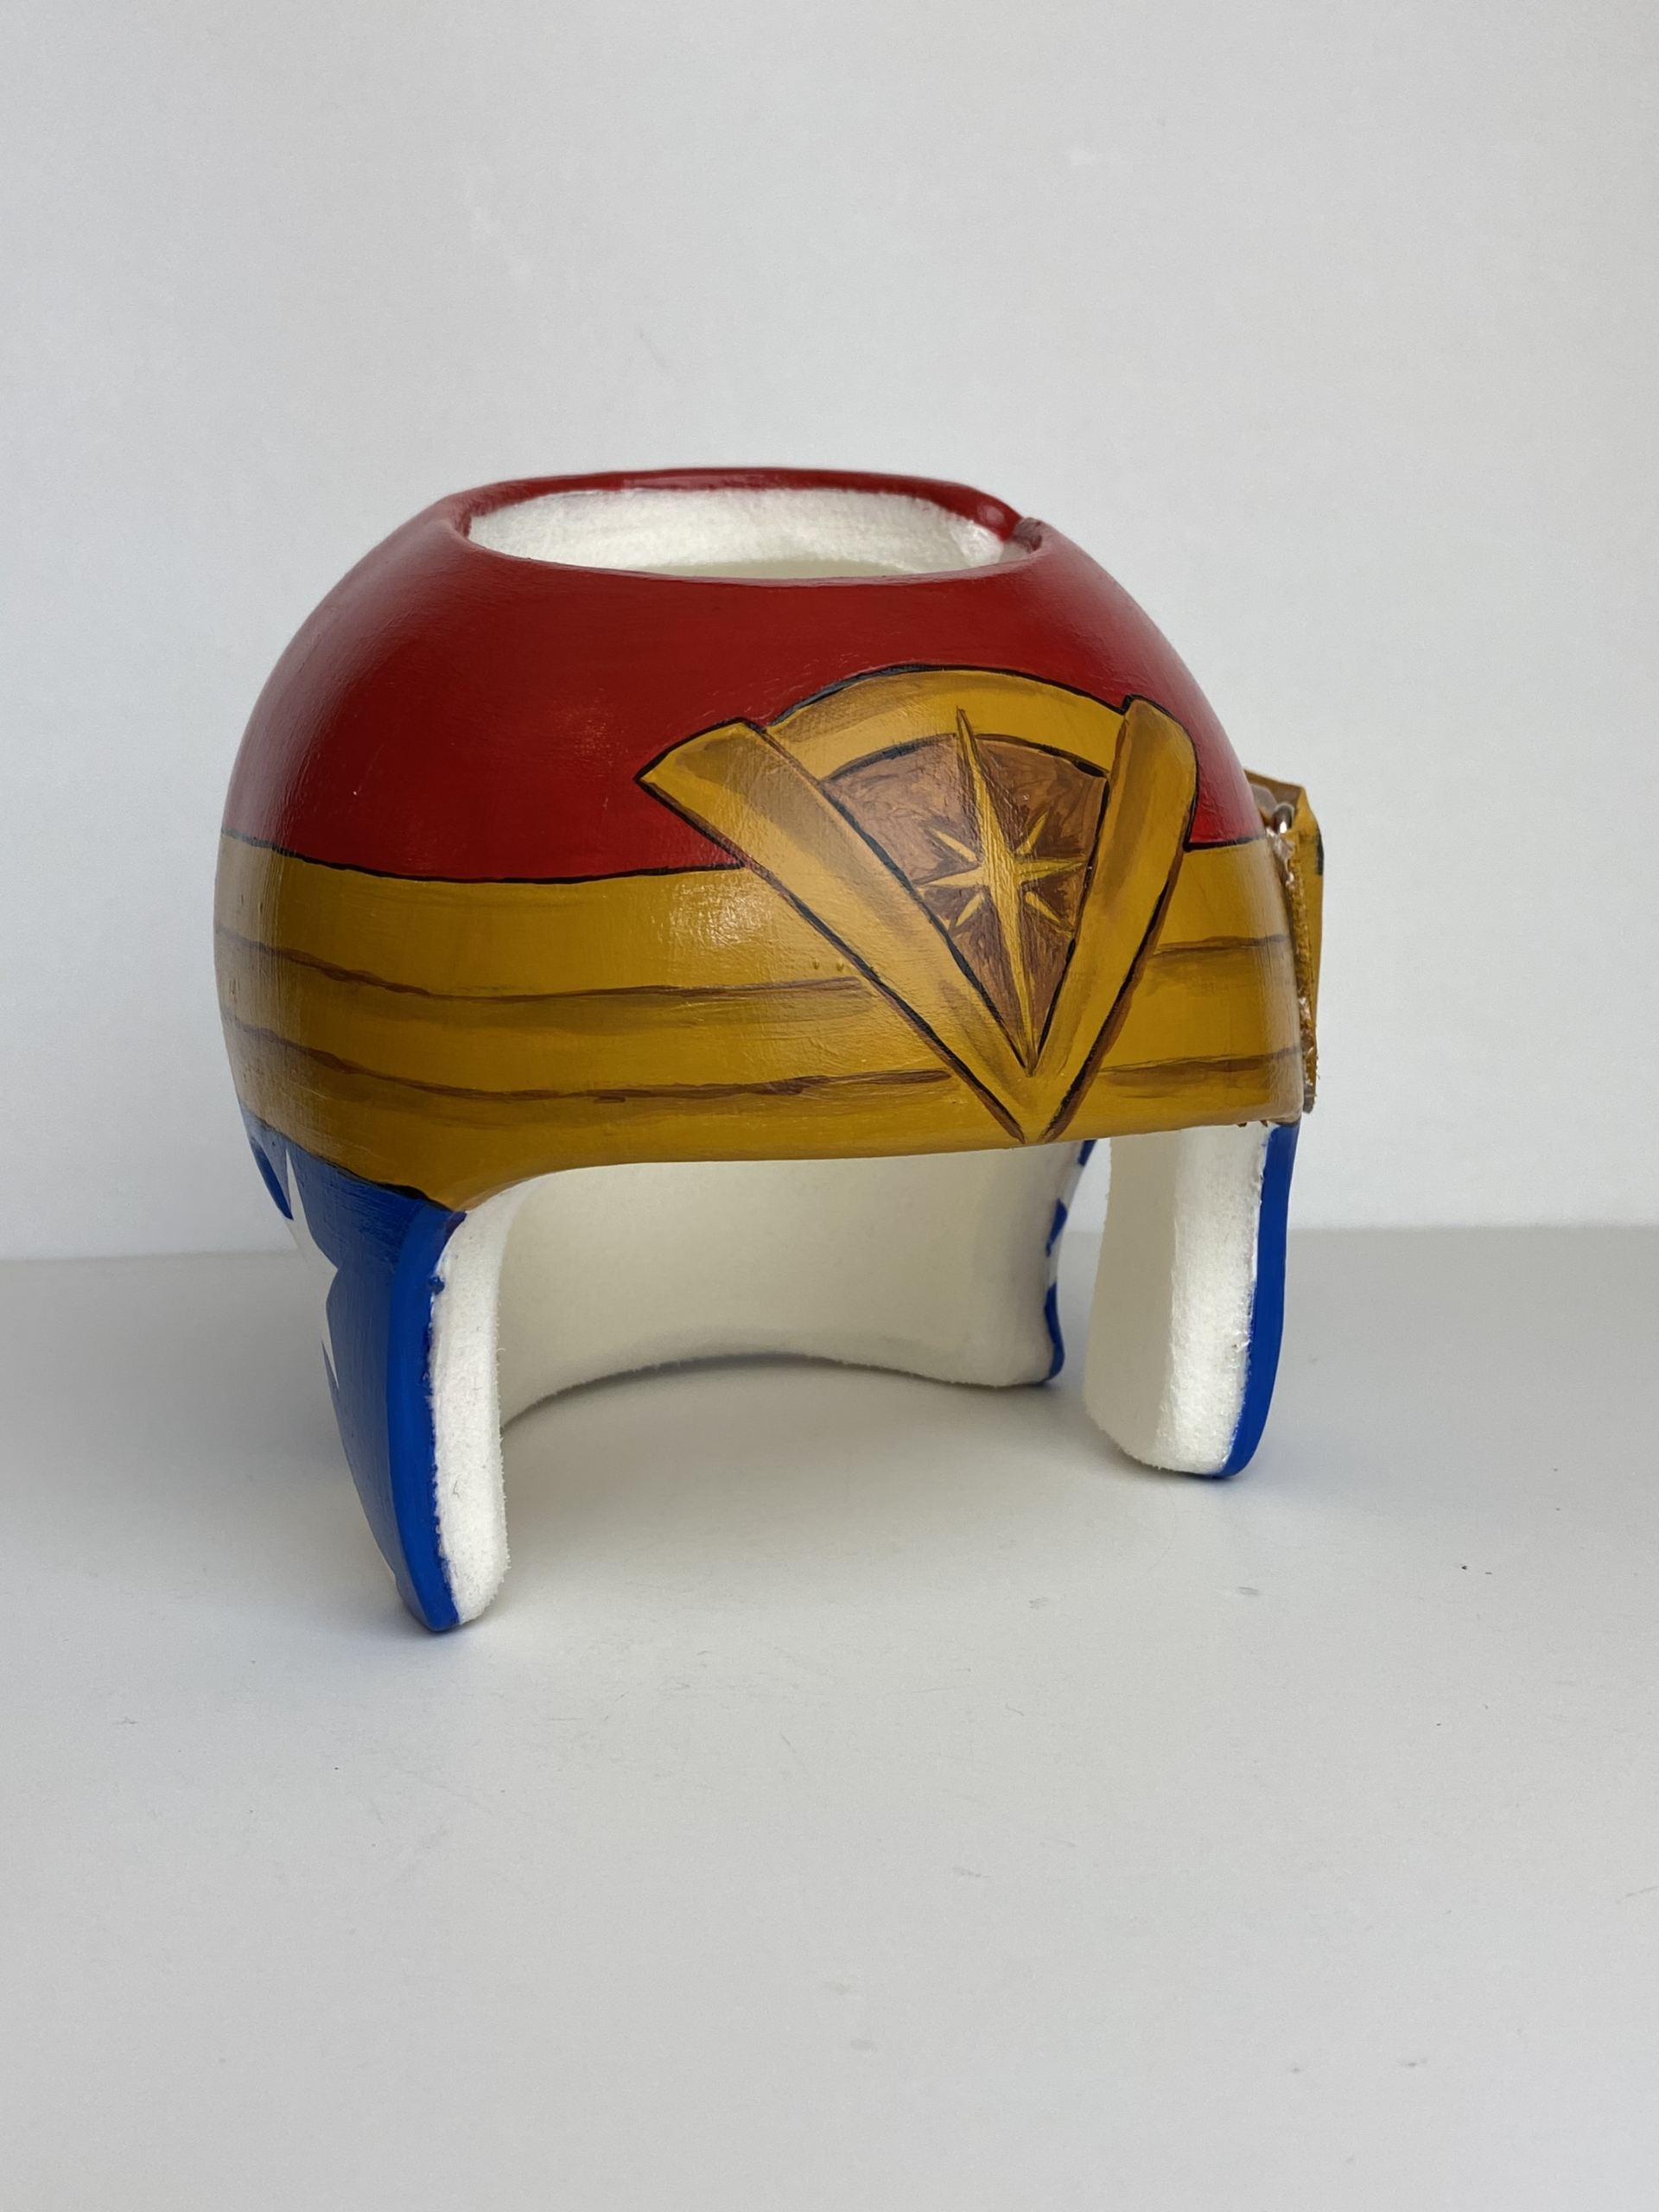 Painted Cranial Helmet | Custom Painted Cranial Band | Cranial Band Artist